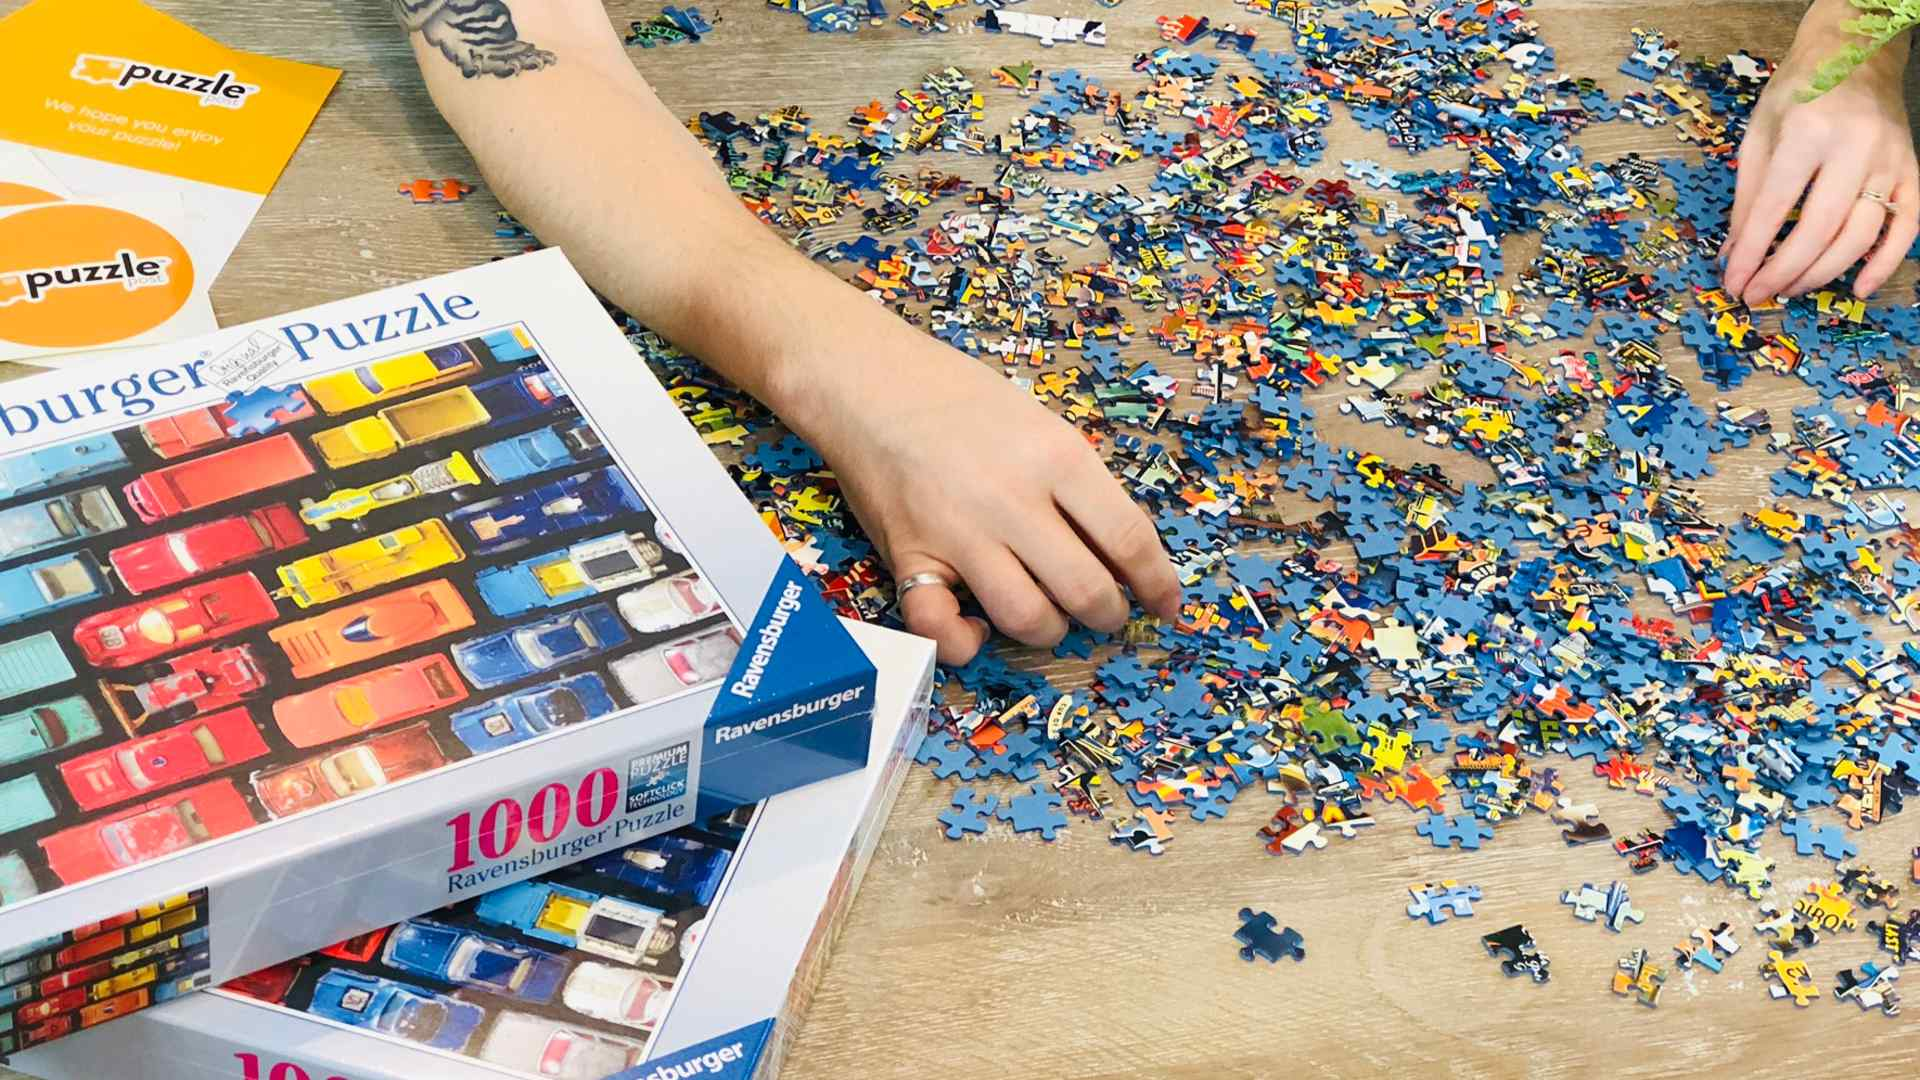 Puzzle Post Is Australia's First Jigsaw Puzzle Subscription Service